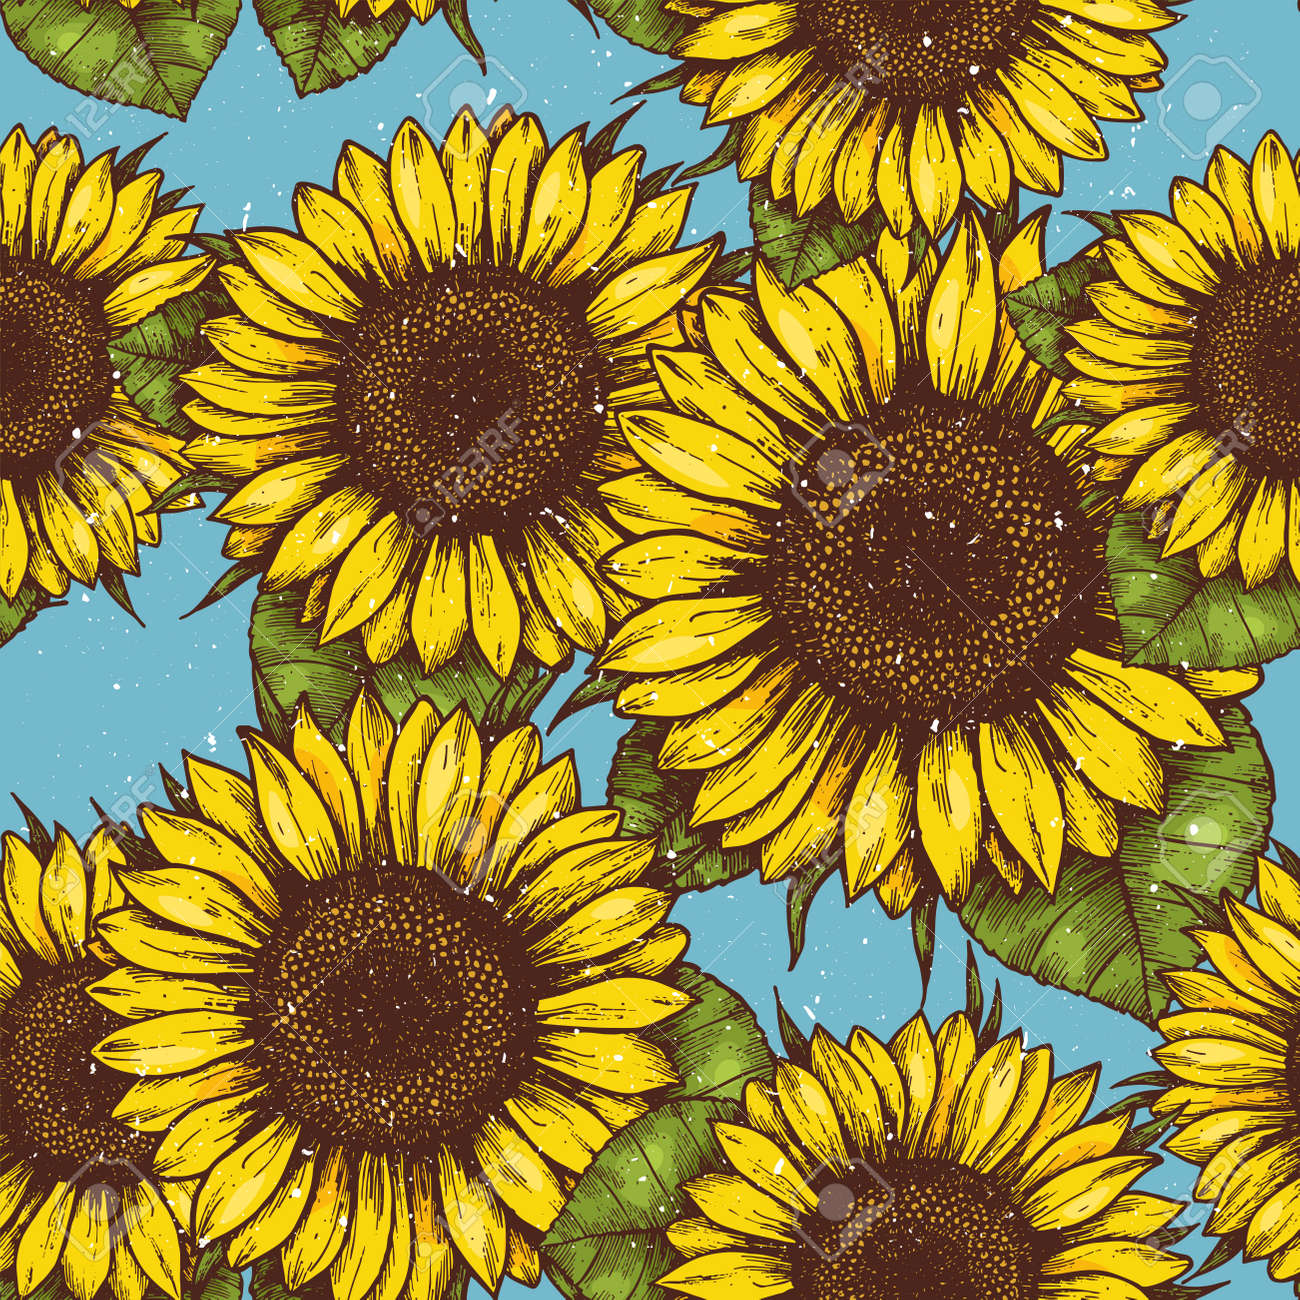 Sunflower Vintage Seamless Pattern Retro Background Vector Illustration Stock